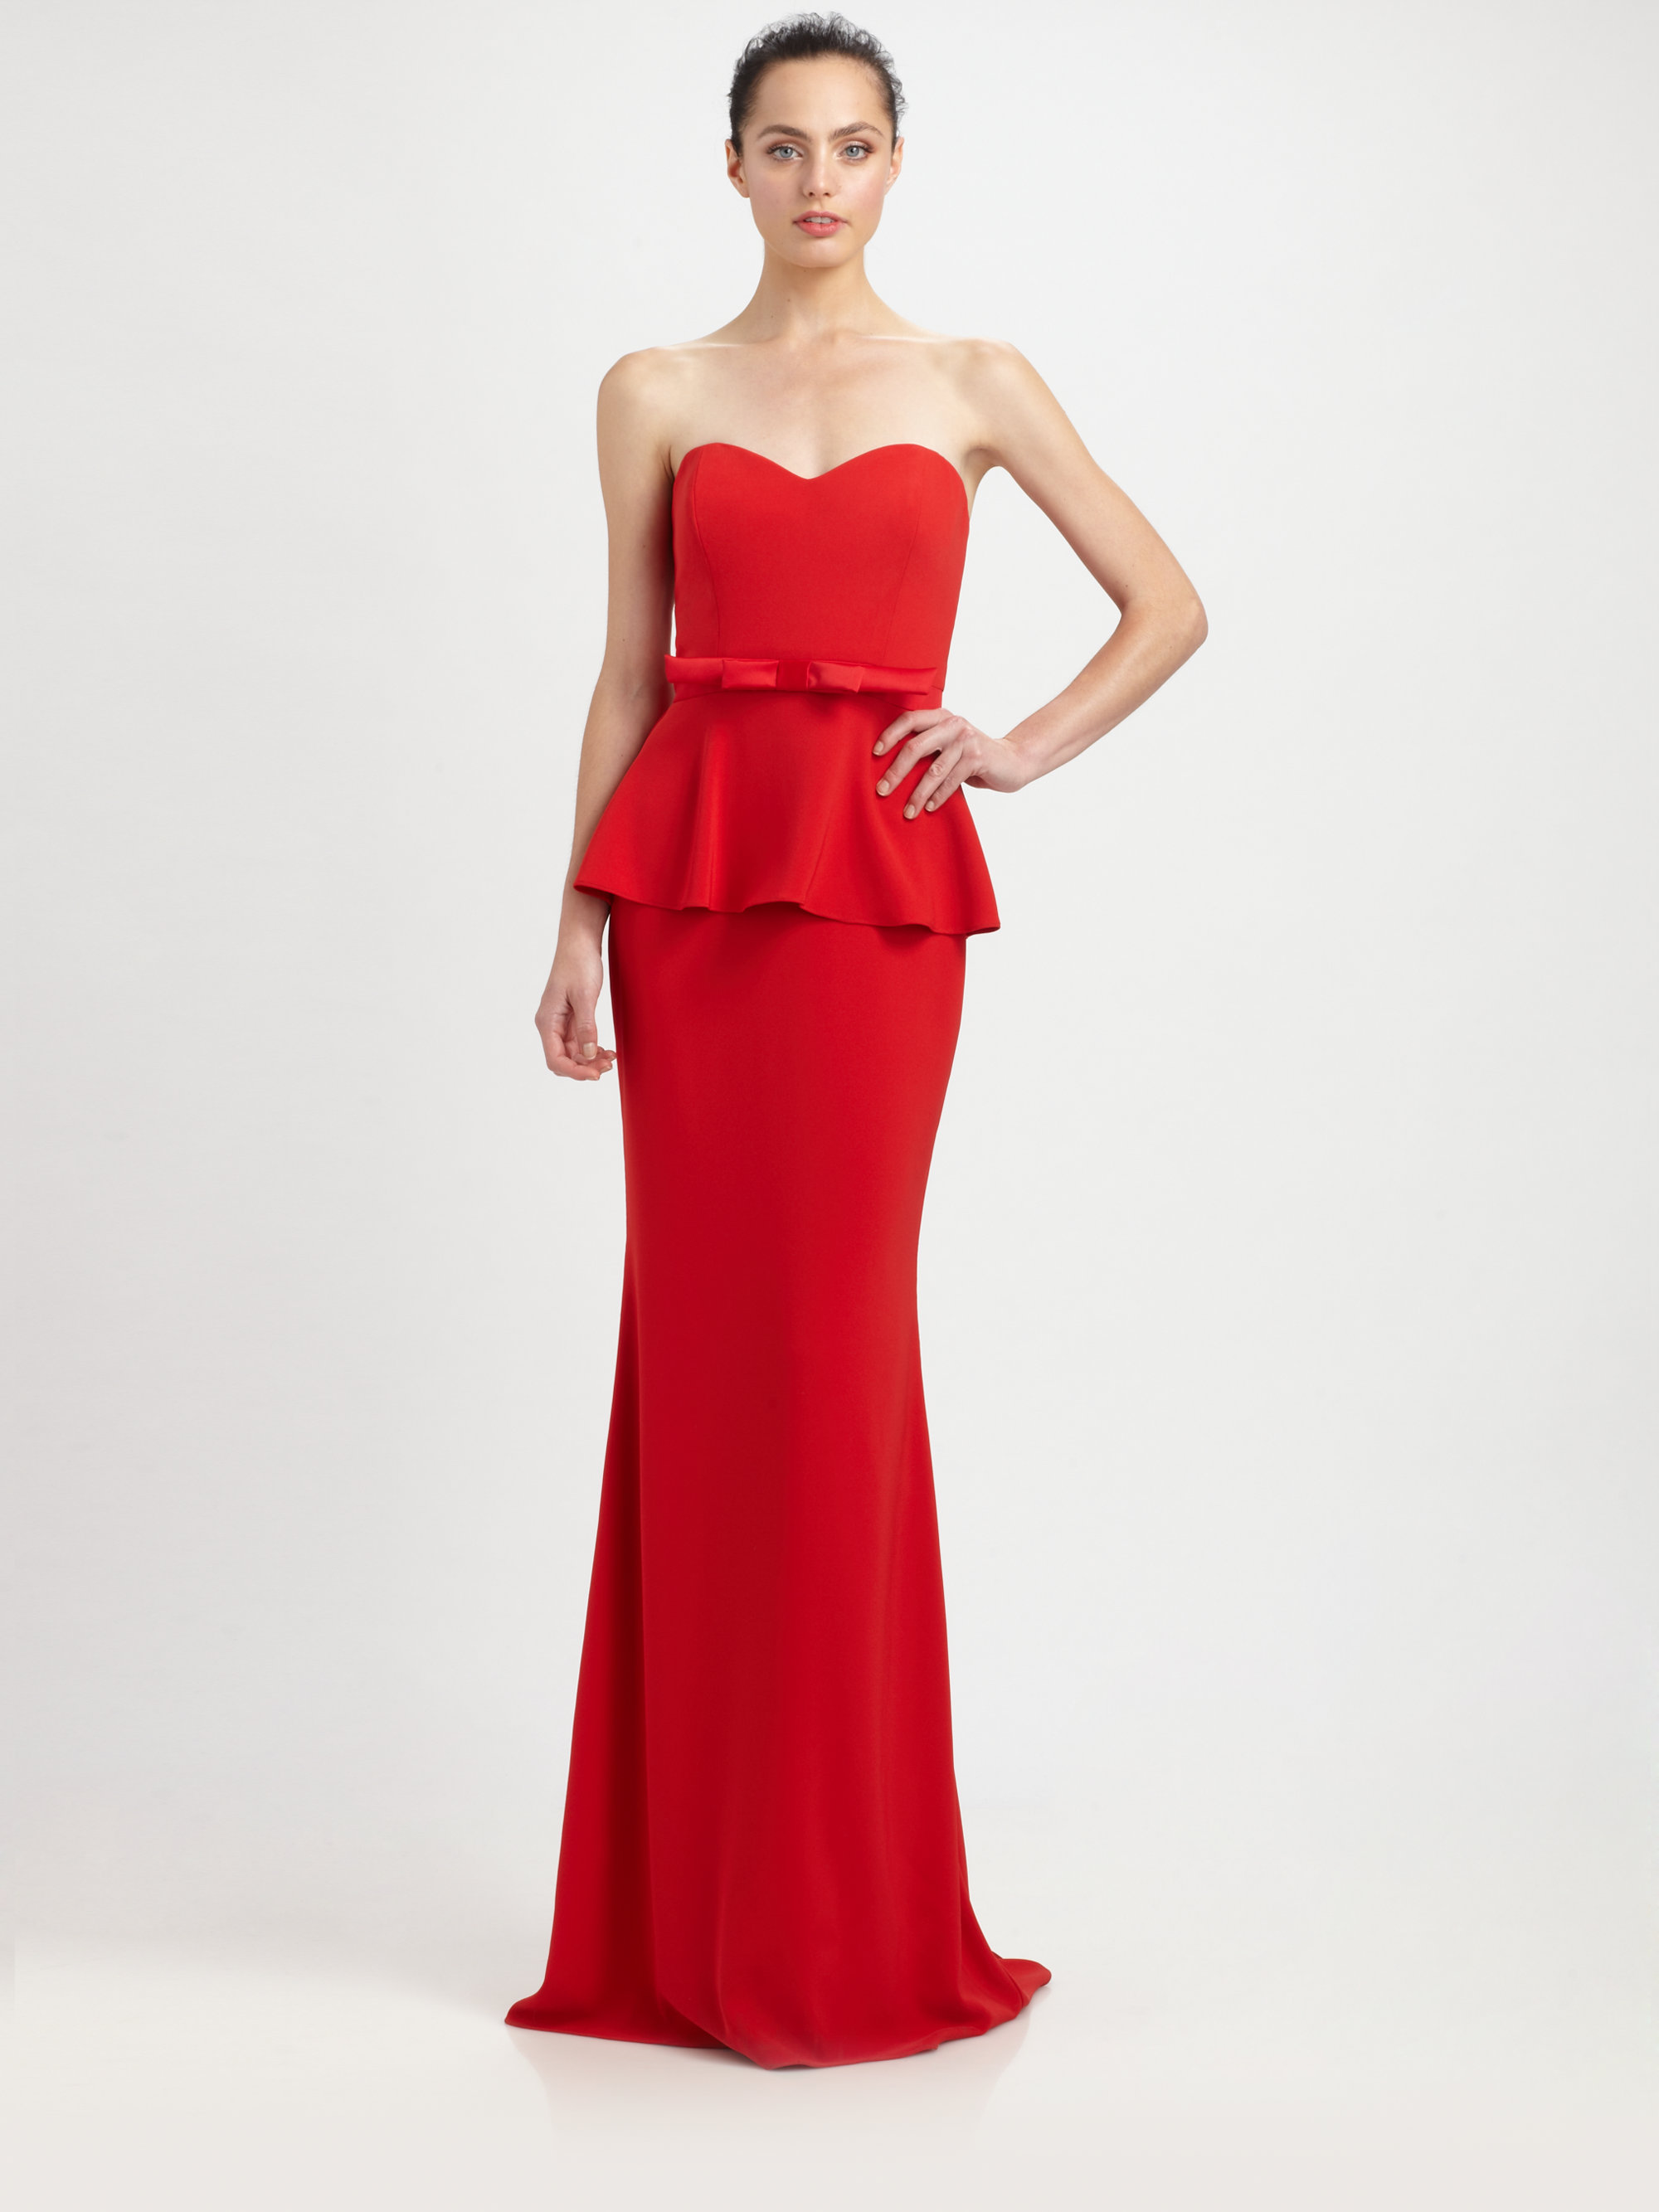 52e3adc09fe11 Badgley Mischka Strapless Peplum Gown in Red - Lyst